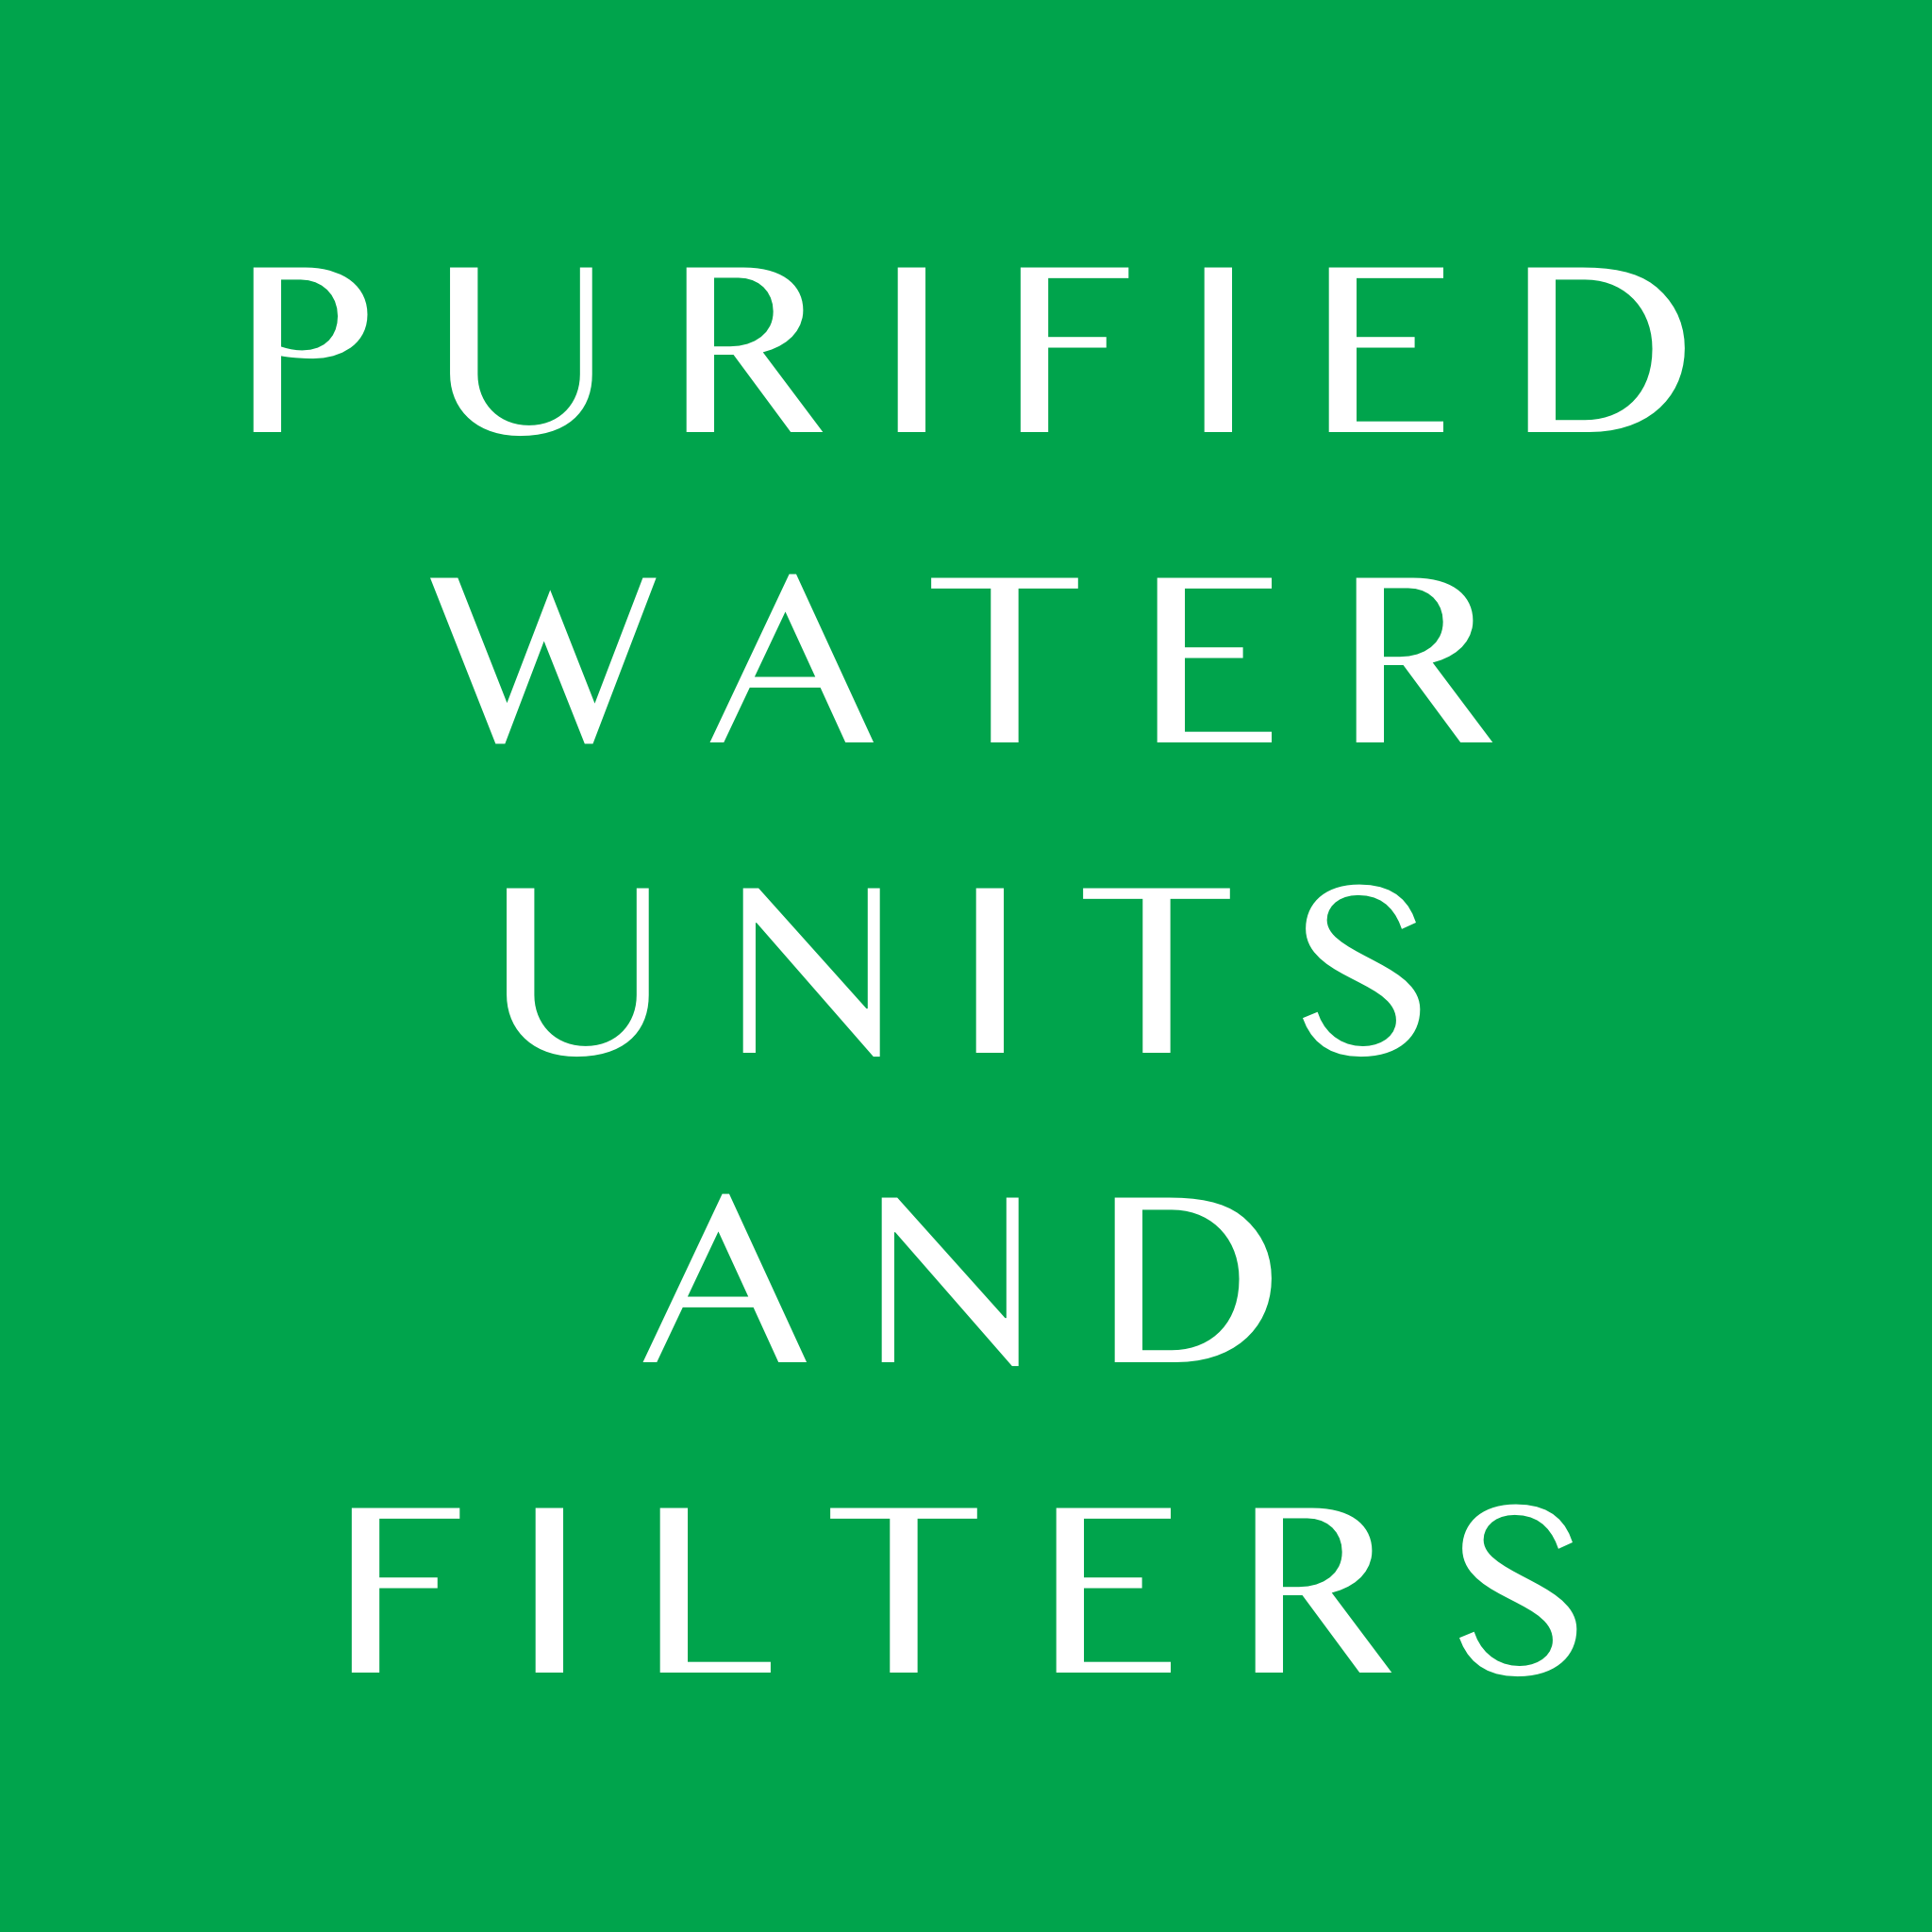 Purified Water Units and Filters